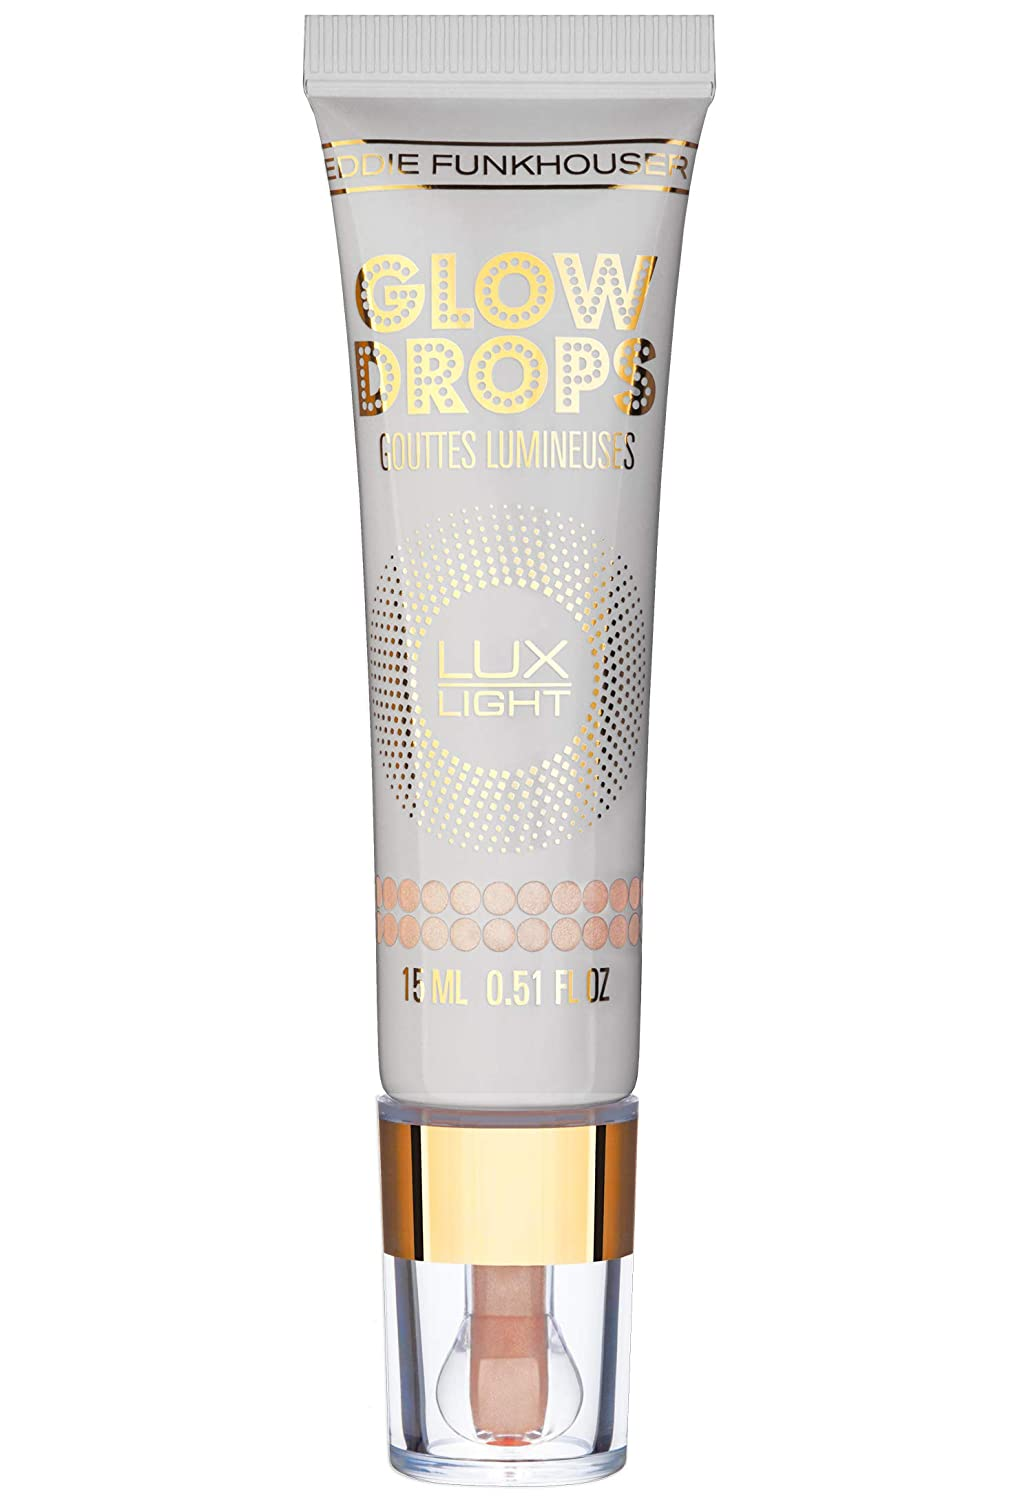 EDDIE FUNKHOUSER Luxlight Glow Drops Liquid Highlighter Makeup, Illuminator for Radiant Skin